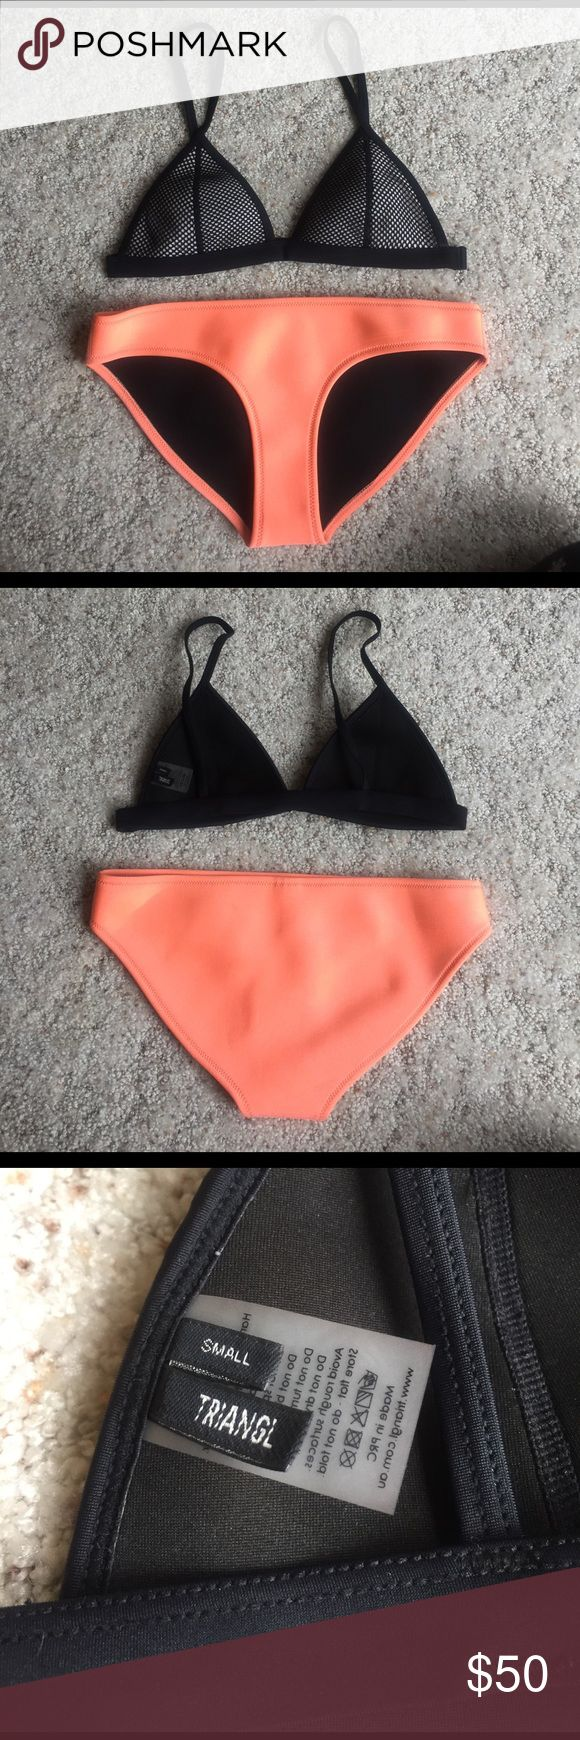 Triangl neoprene bikini Classic Triangl bikini. Perfect for summer! Neon orange bottom with black and white top. Worn a handful of times. Great condition! Bottom and top are a size small. I still have the bag, but it has a few stains (pictured). triangl swimwear Swim Bikinis